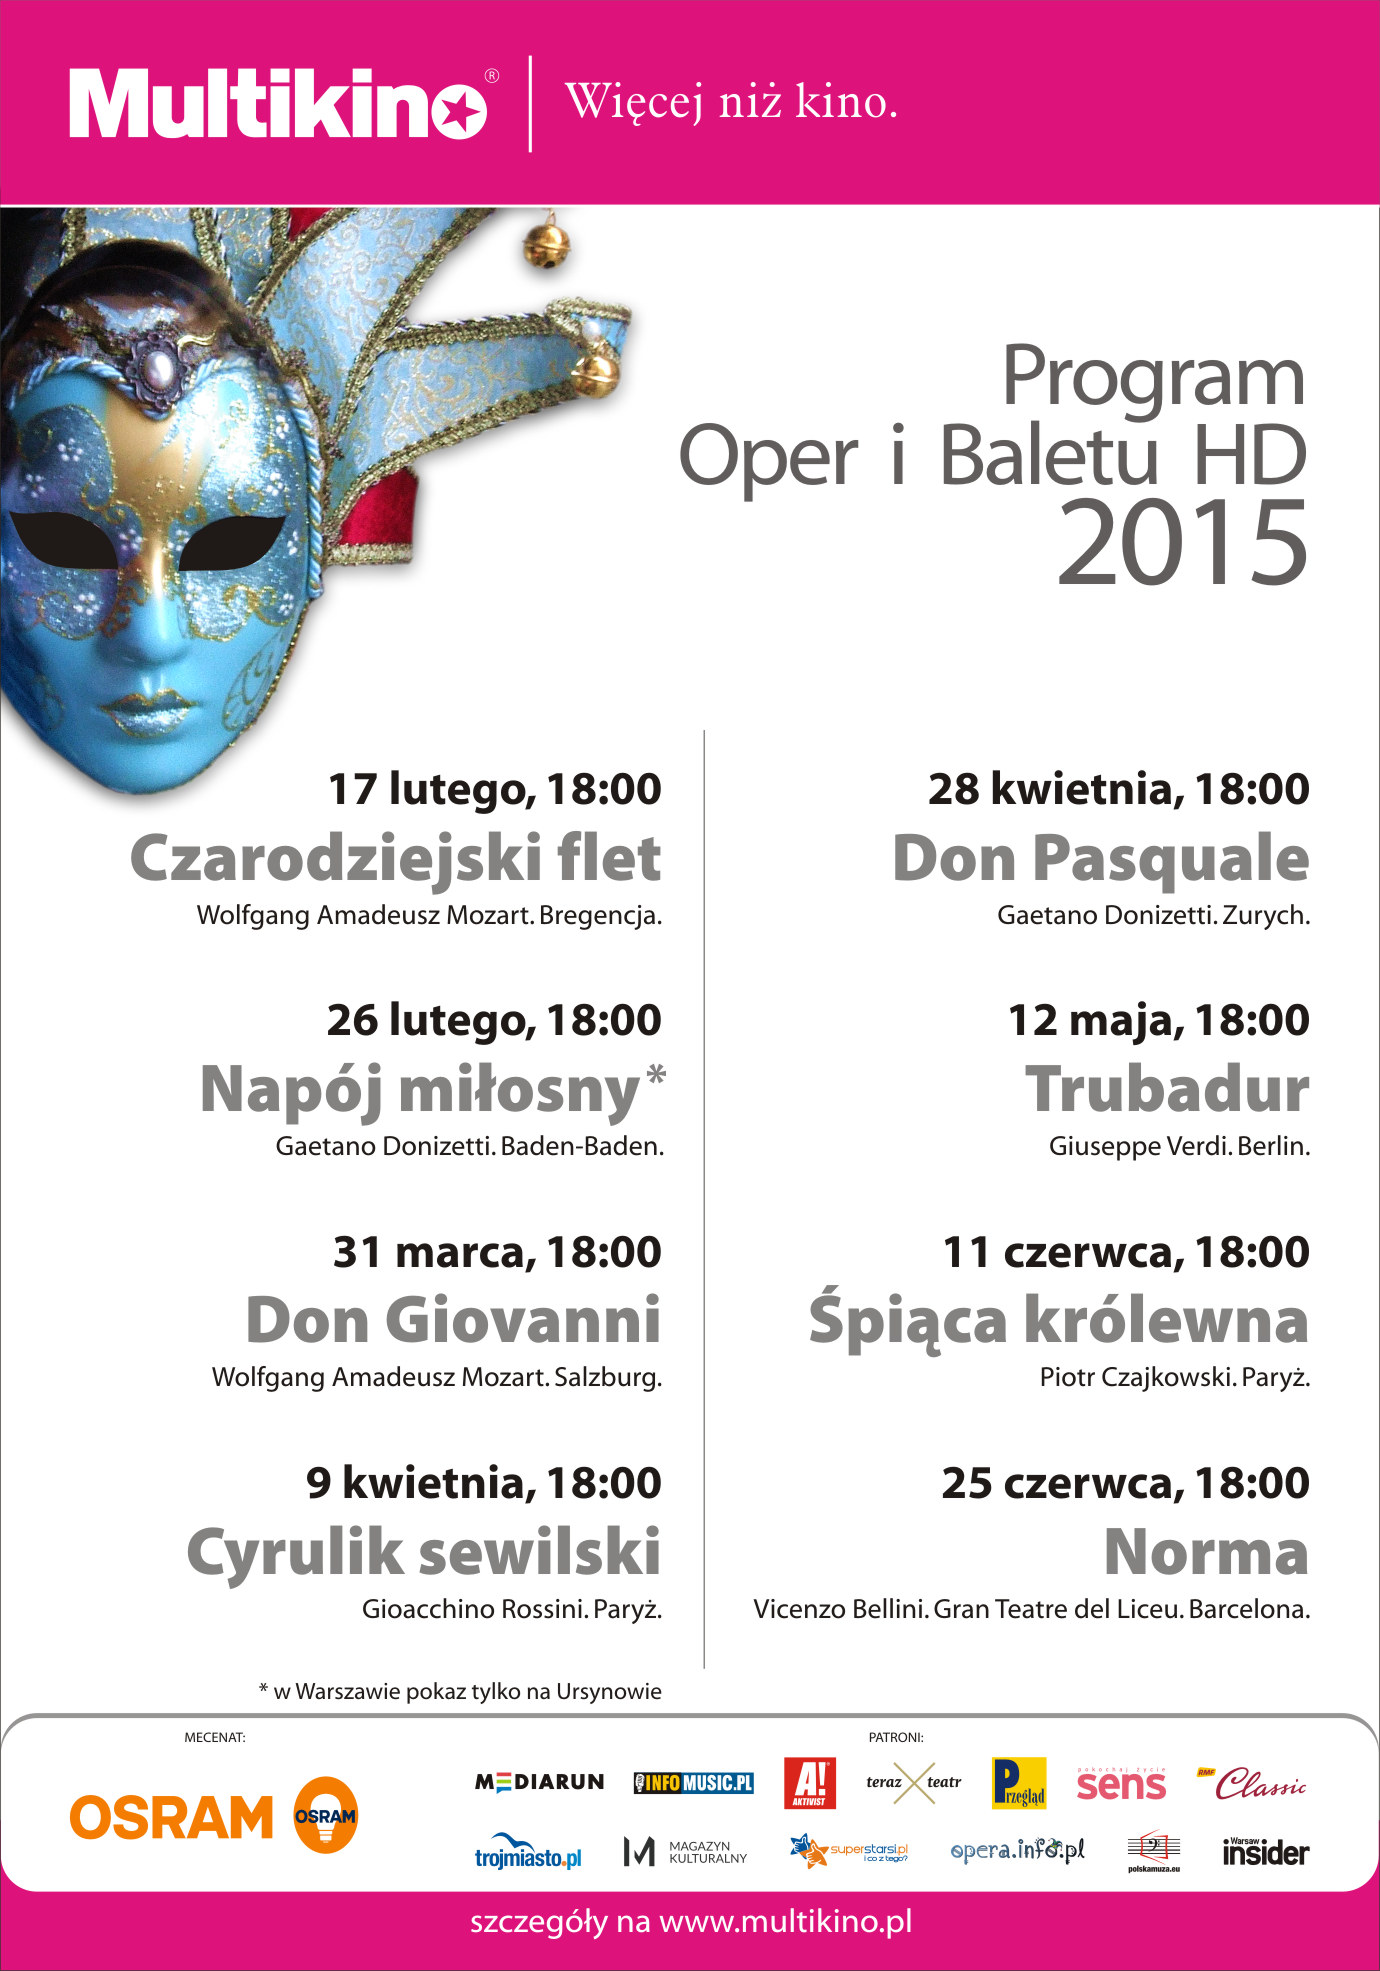 Program retransmisji Oper i Baletu 2015 w Multikinie_Plakat